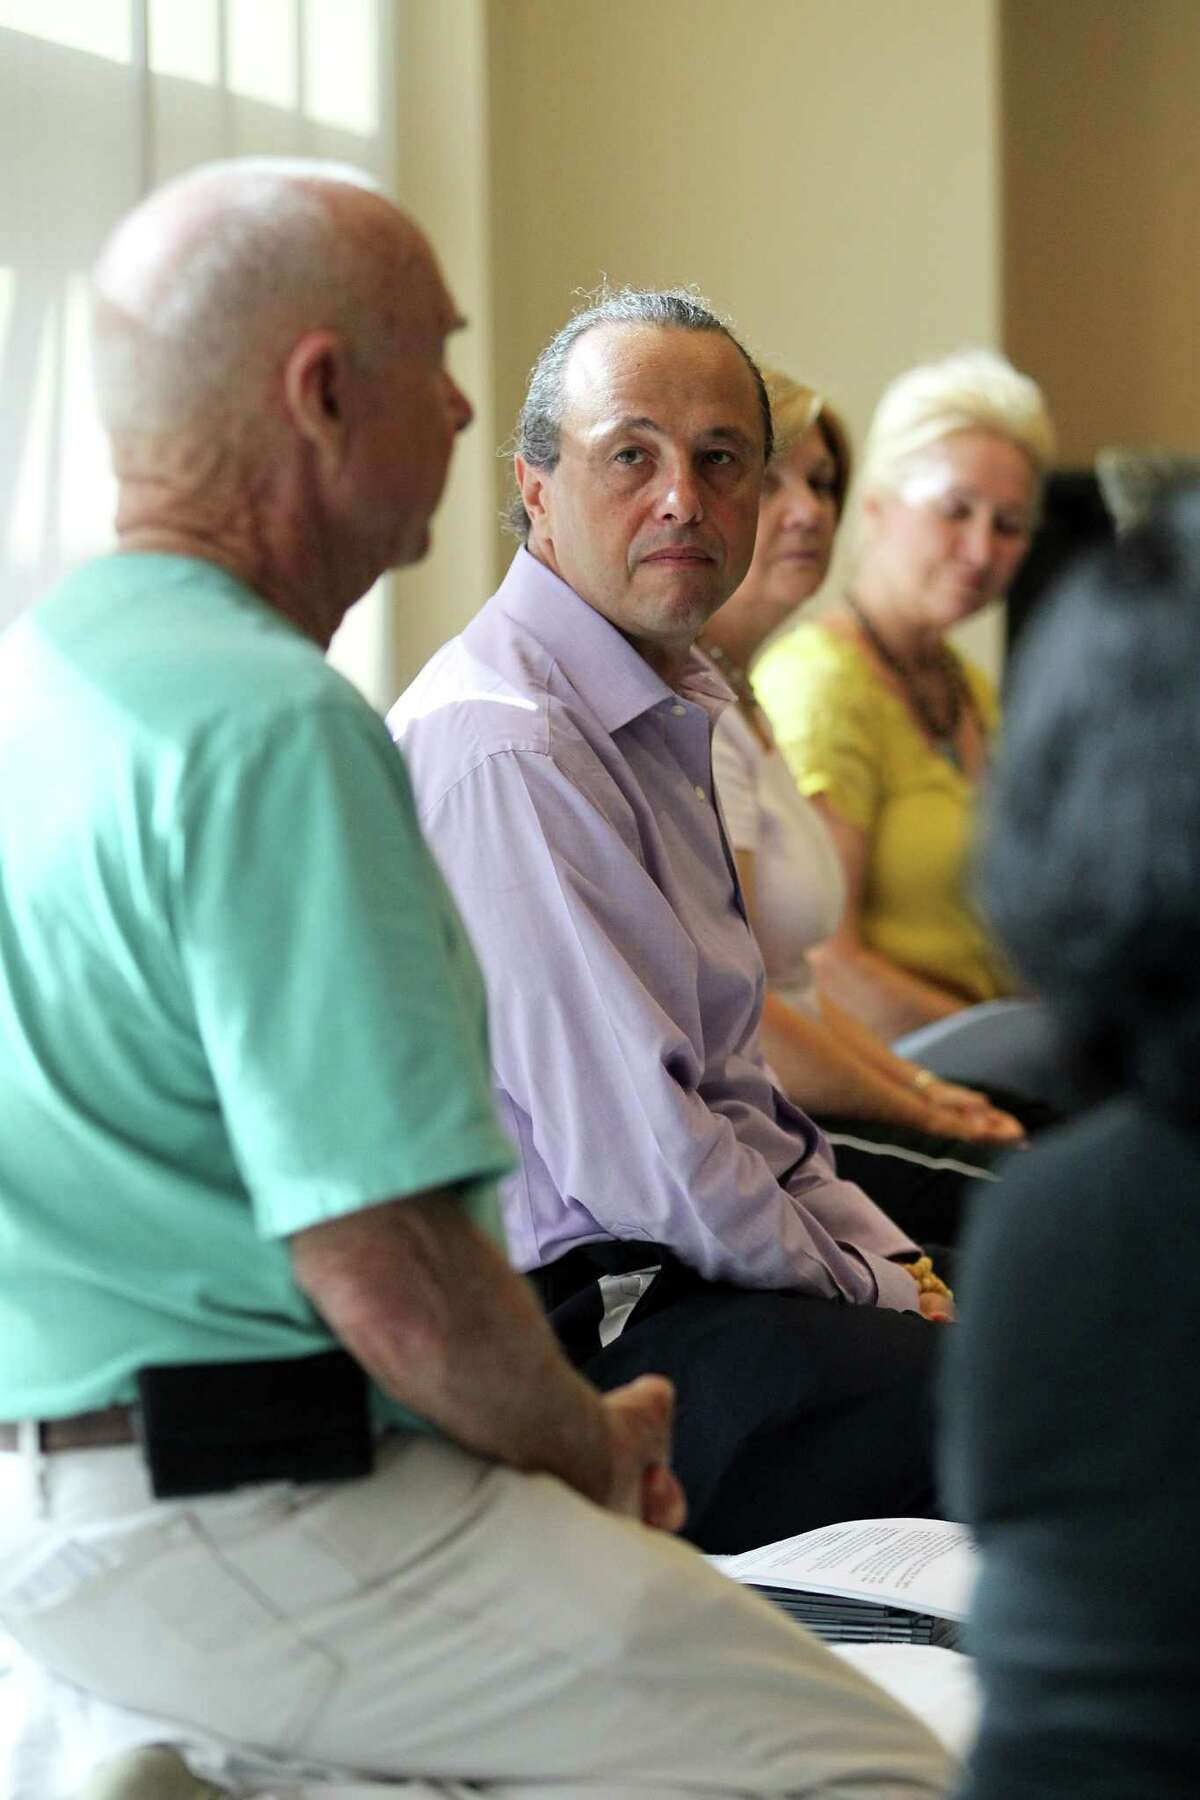 Alejandro Chaoul leads a discussion during a meditation class for cancer patients.